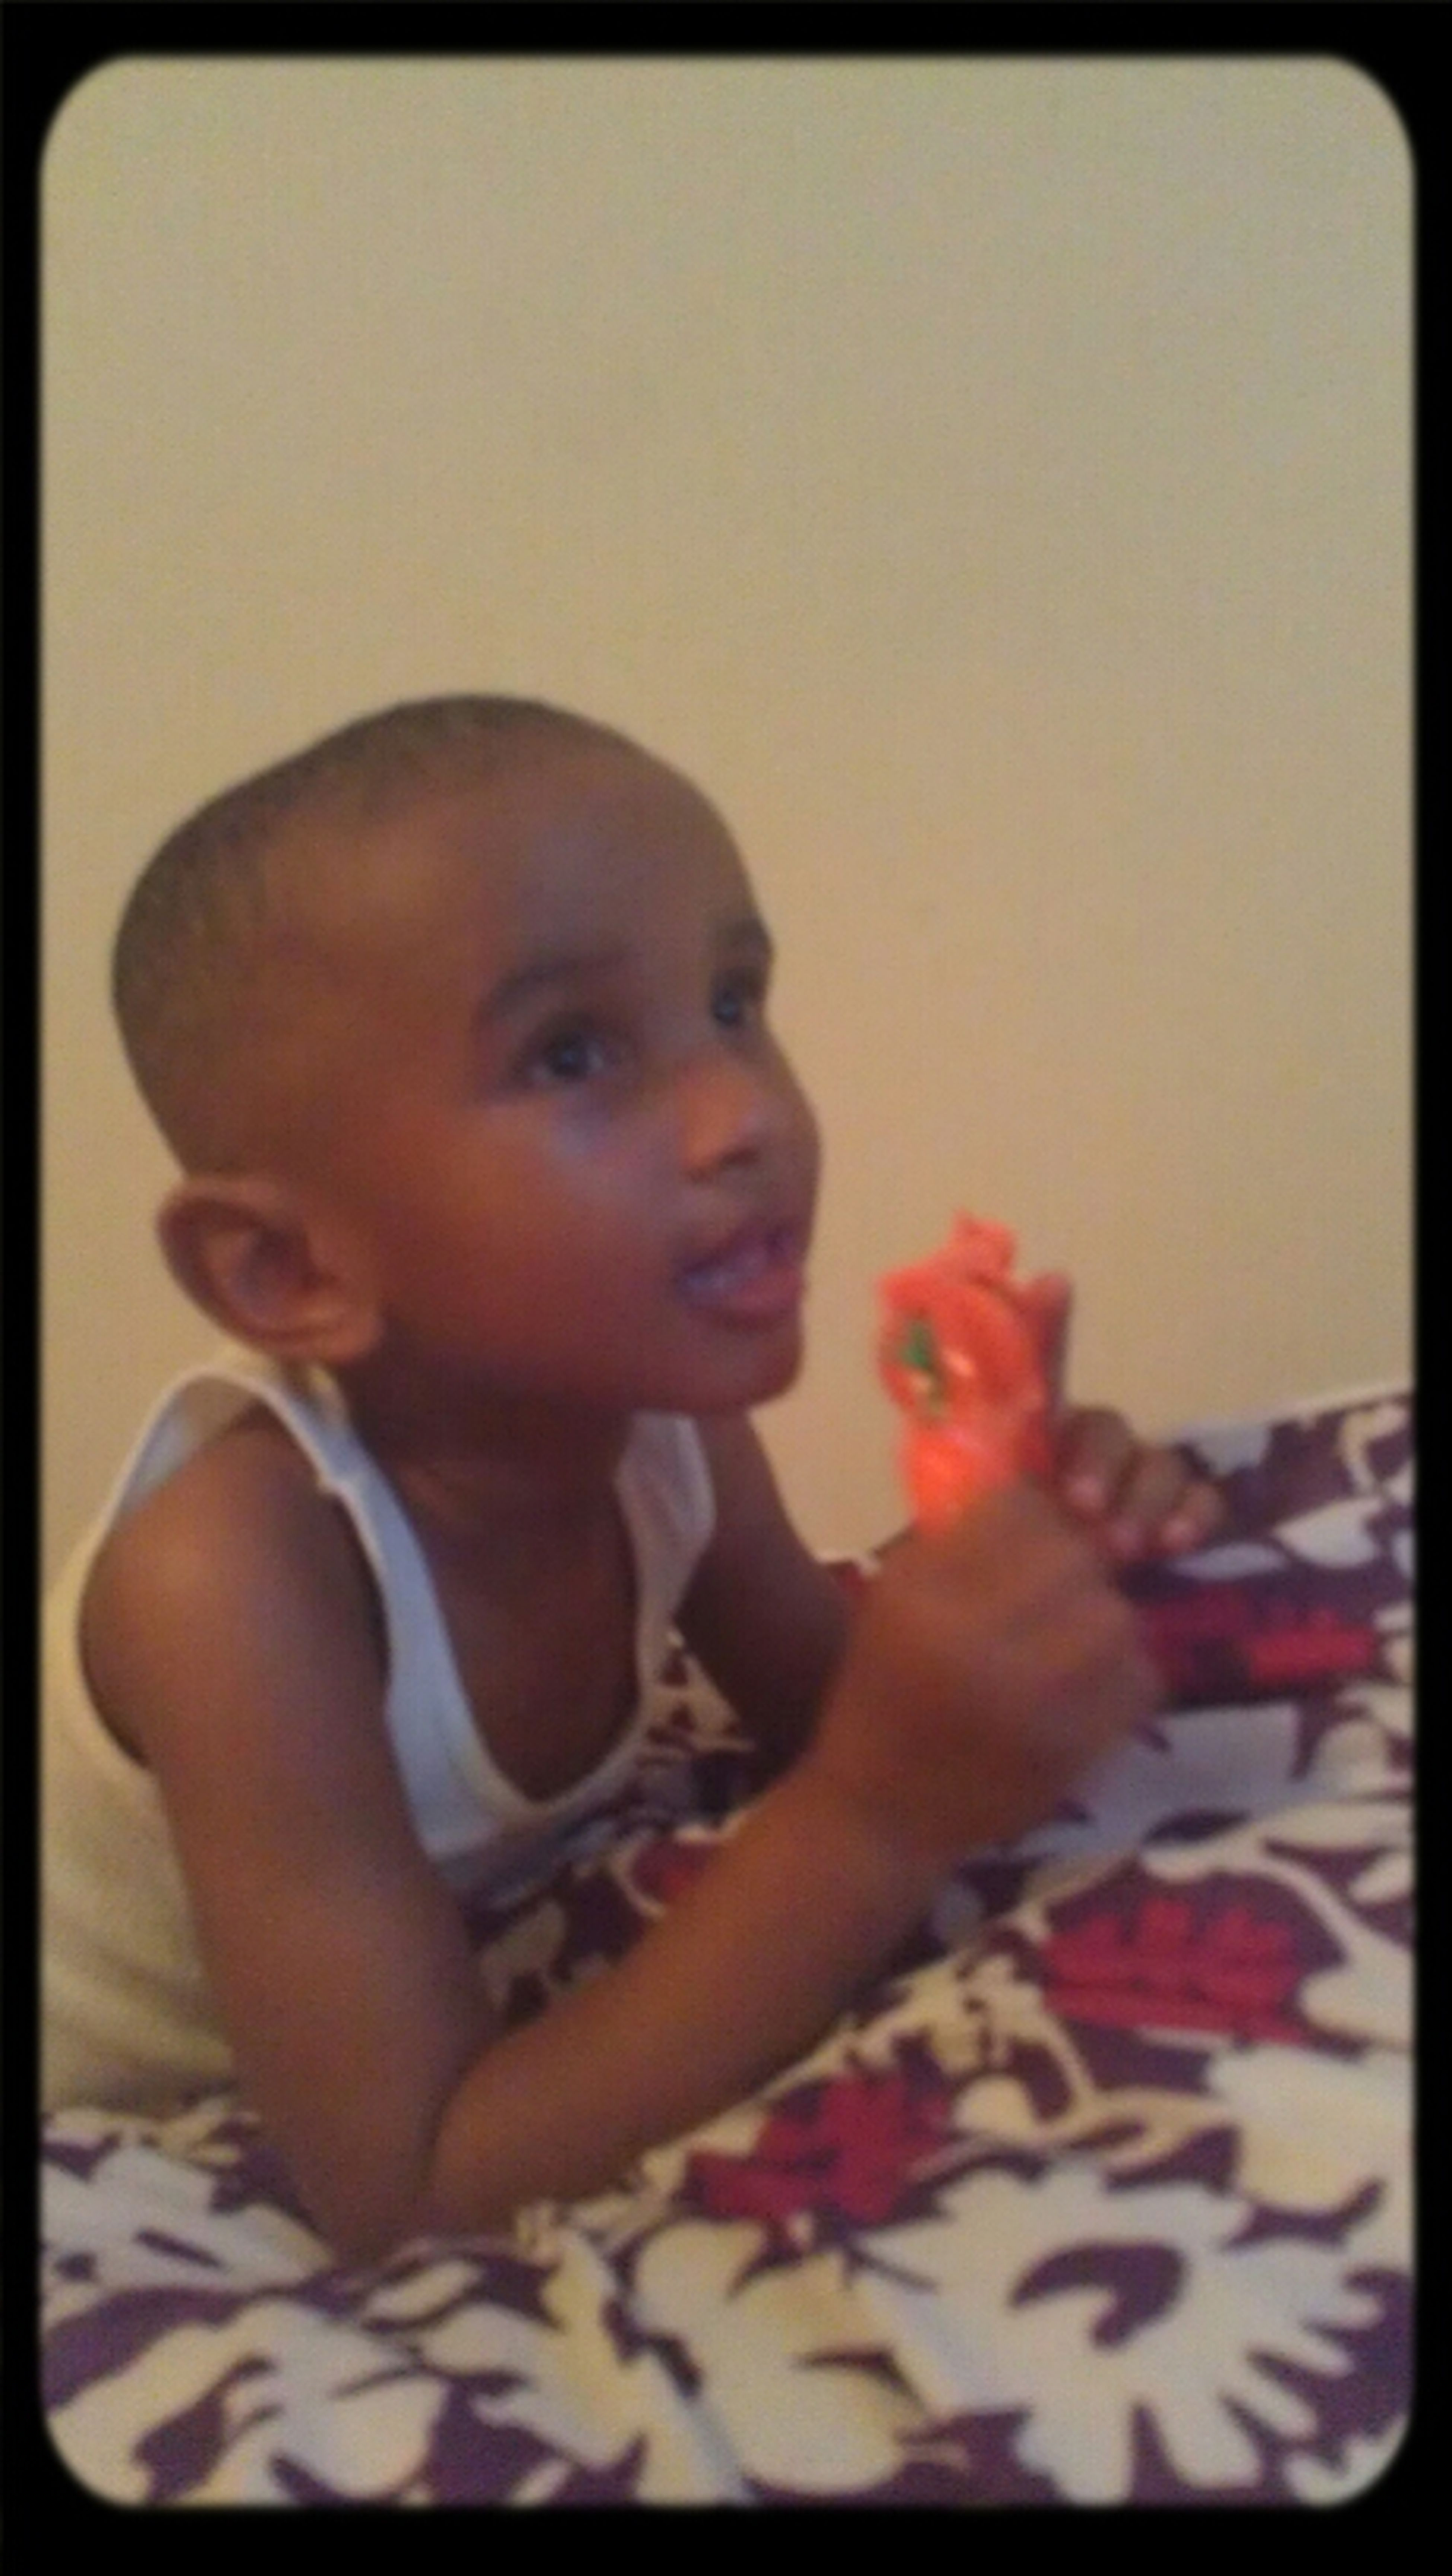 aww look at my lil brother, man he loves his Tv shows!!